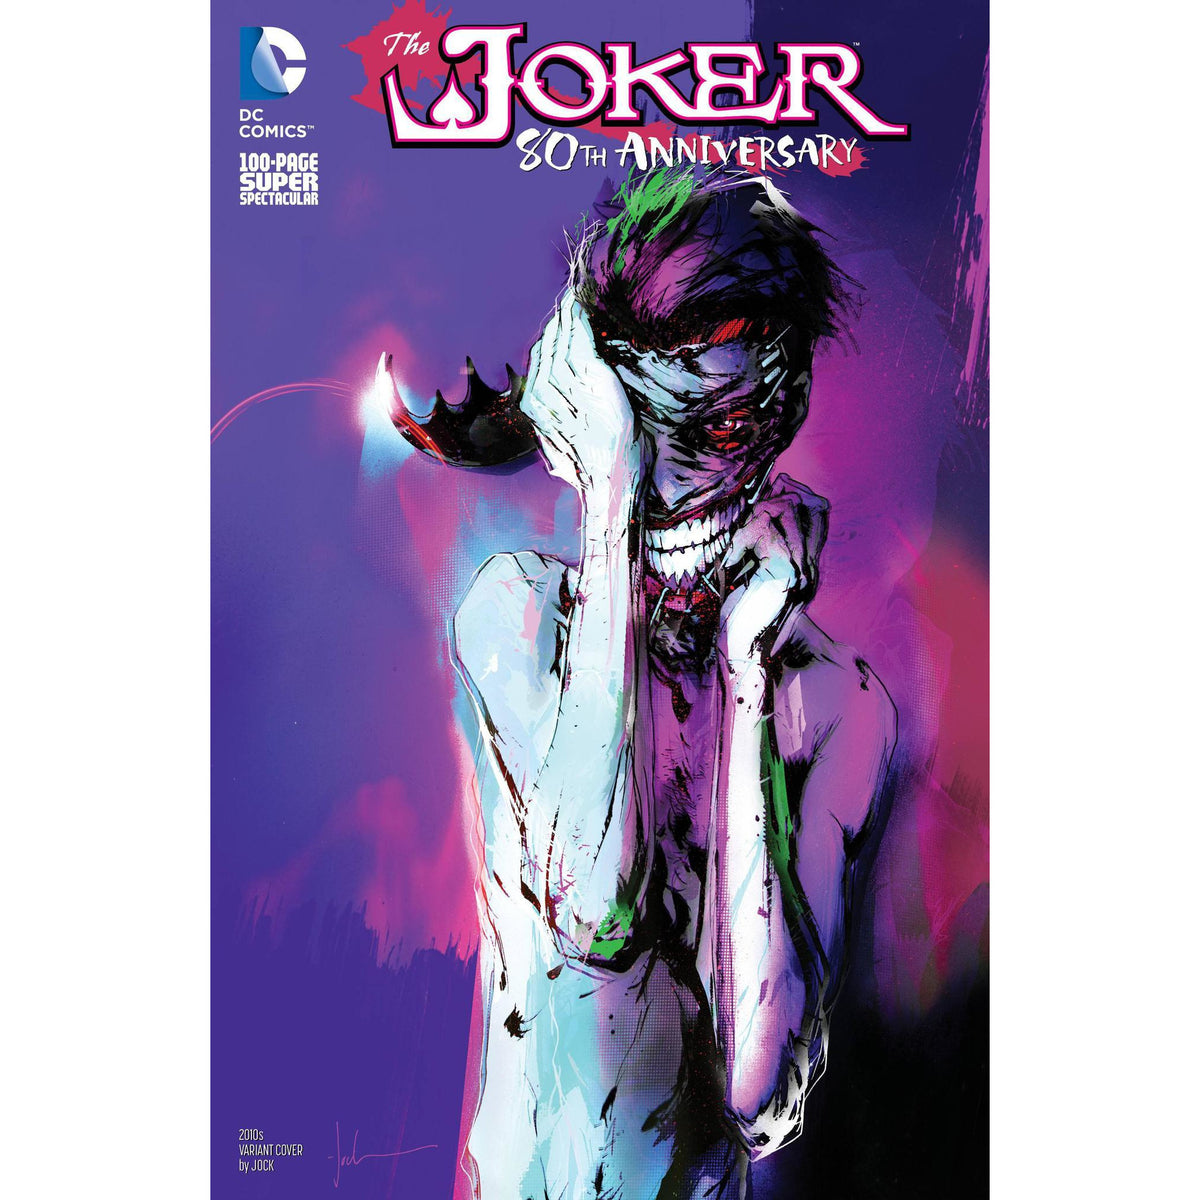 JOKER 80TH ANNIVERSARY 100 PAGE SUPER SPECTACULAR #1 2010s JOCK VARIANT COVER